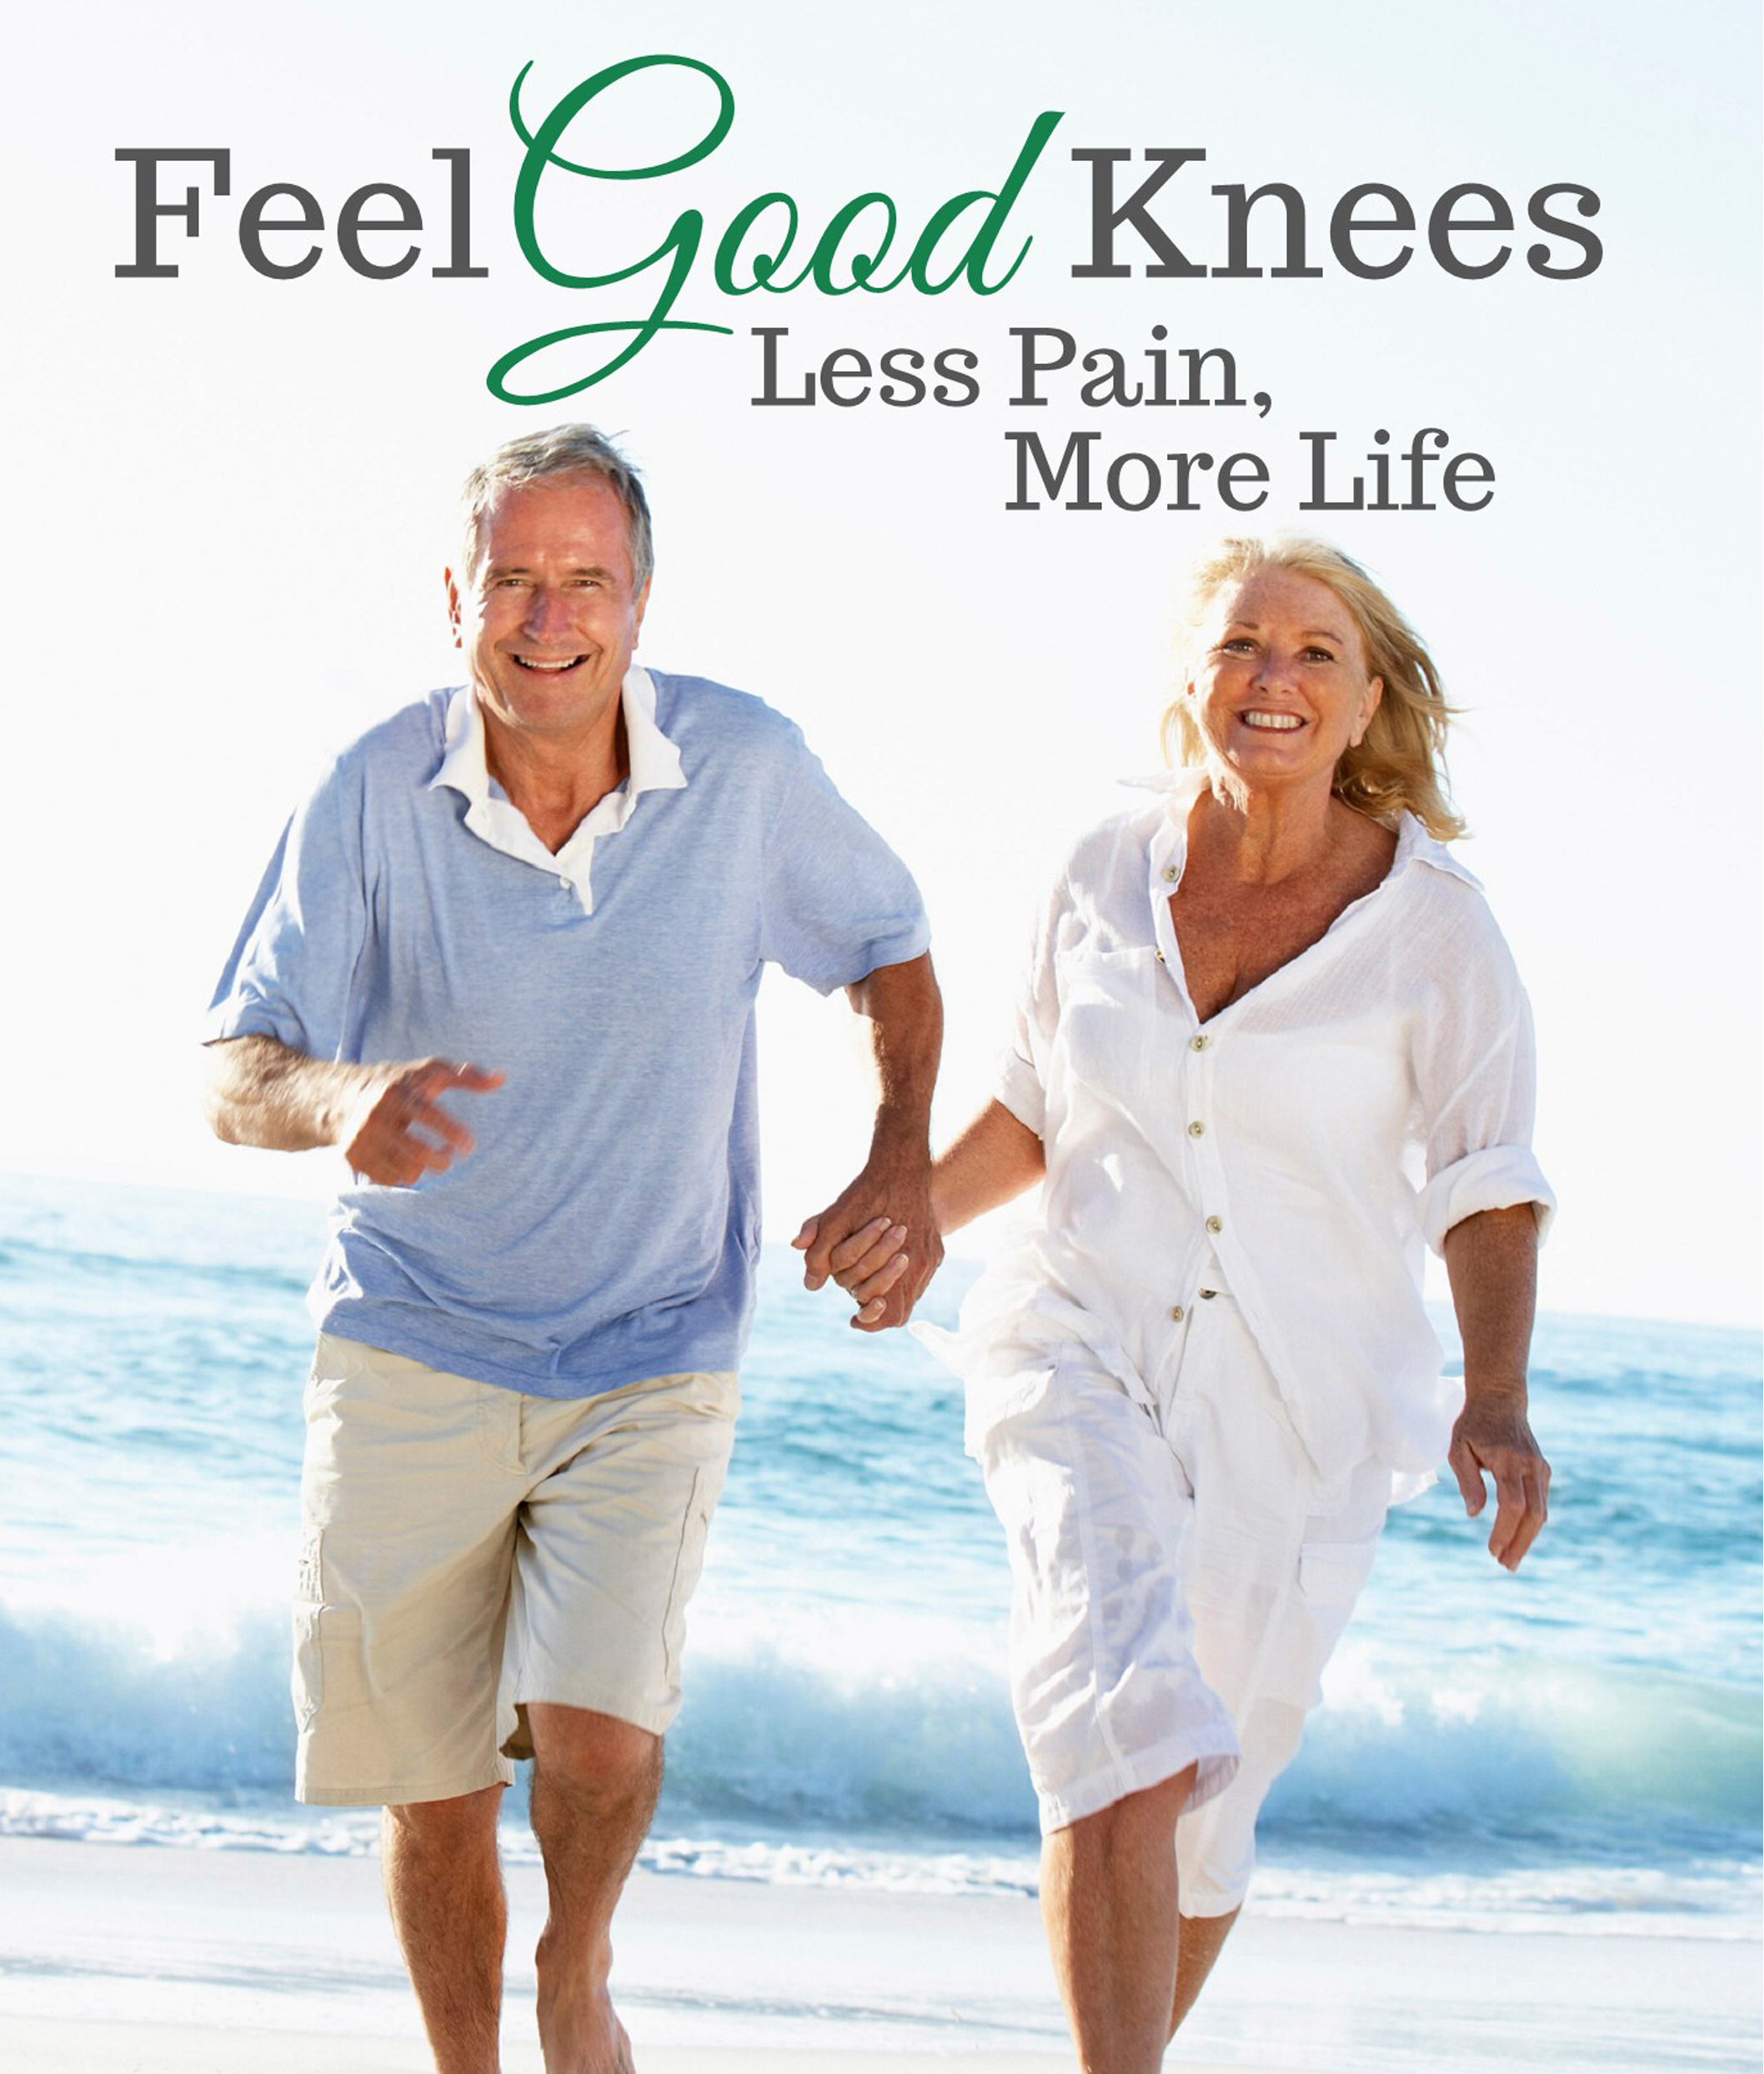 feel-good-knees-for-fast-pain-relief Works